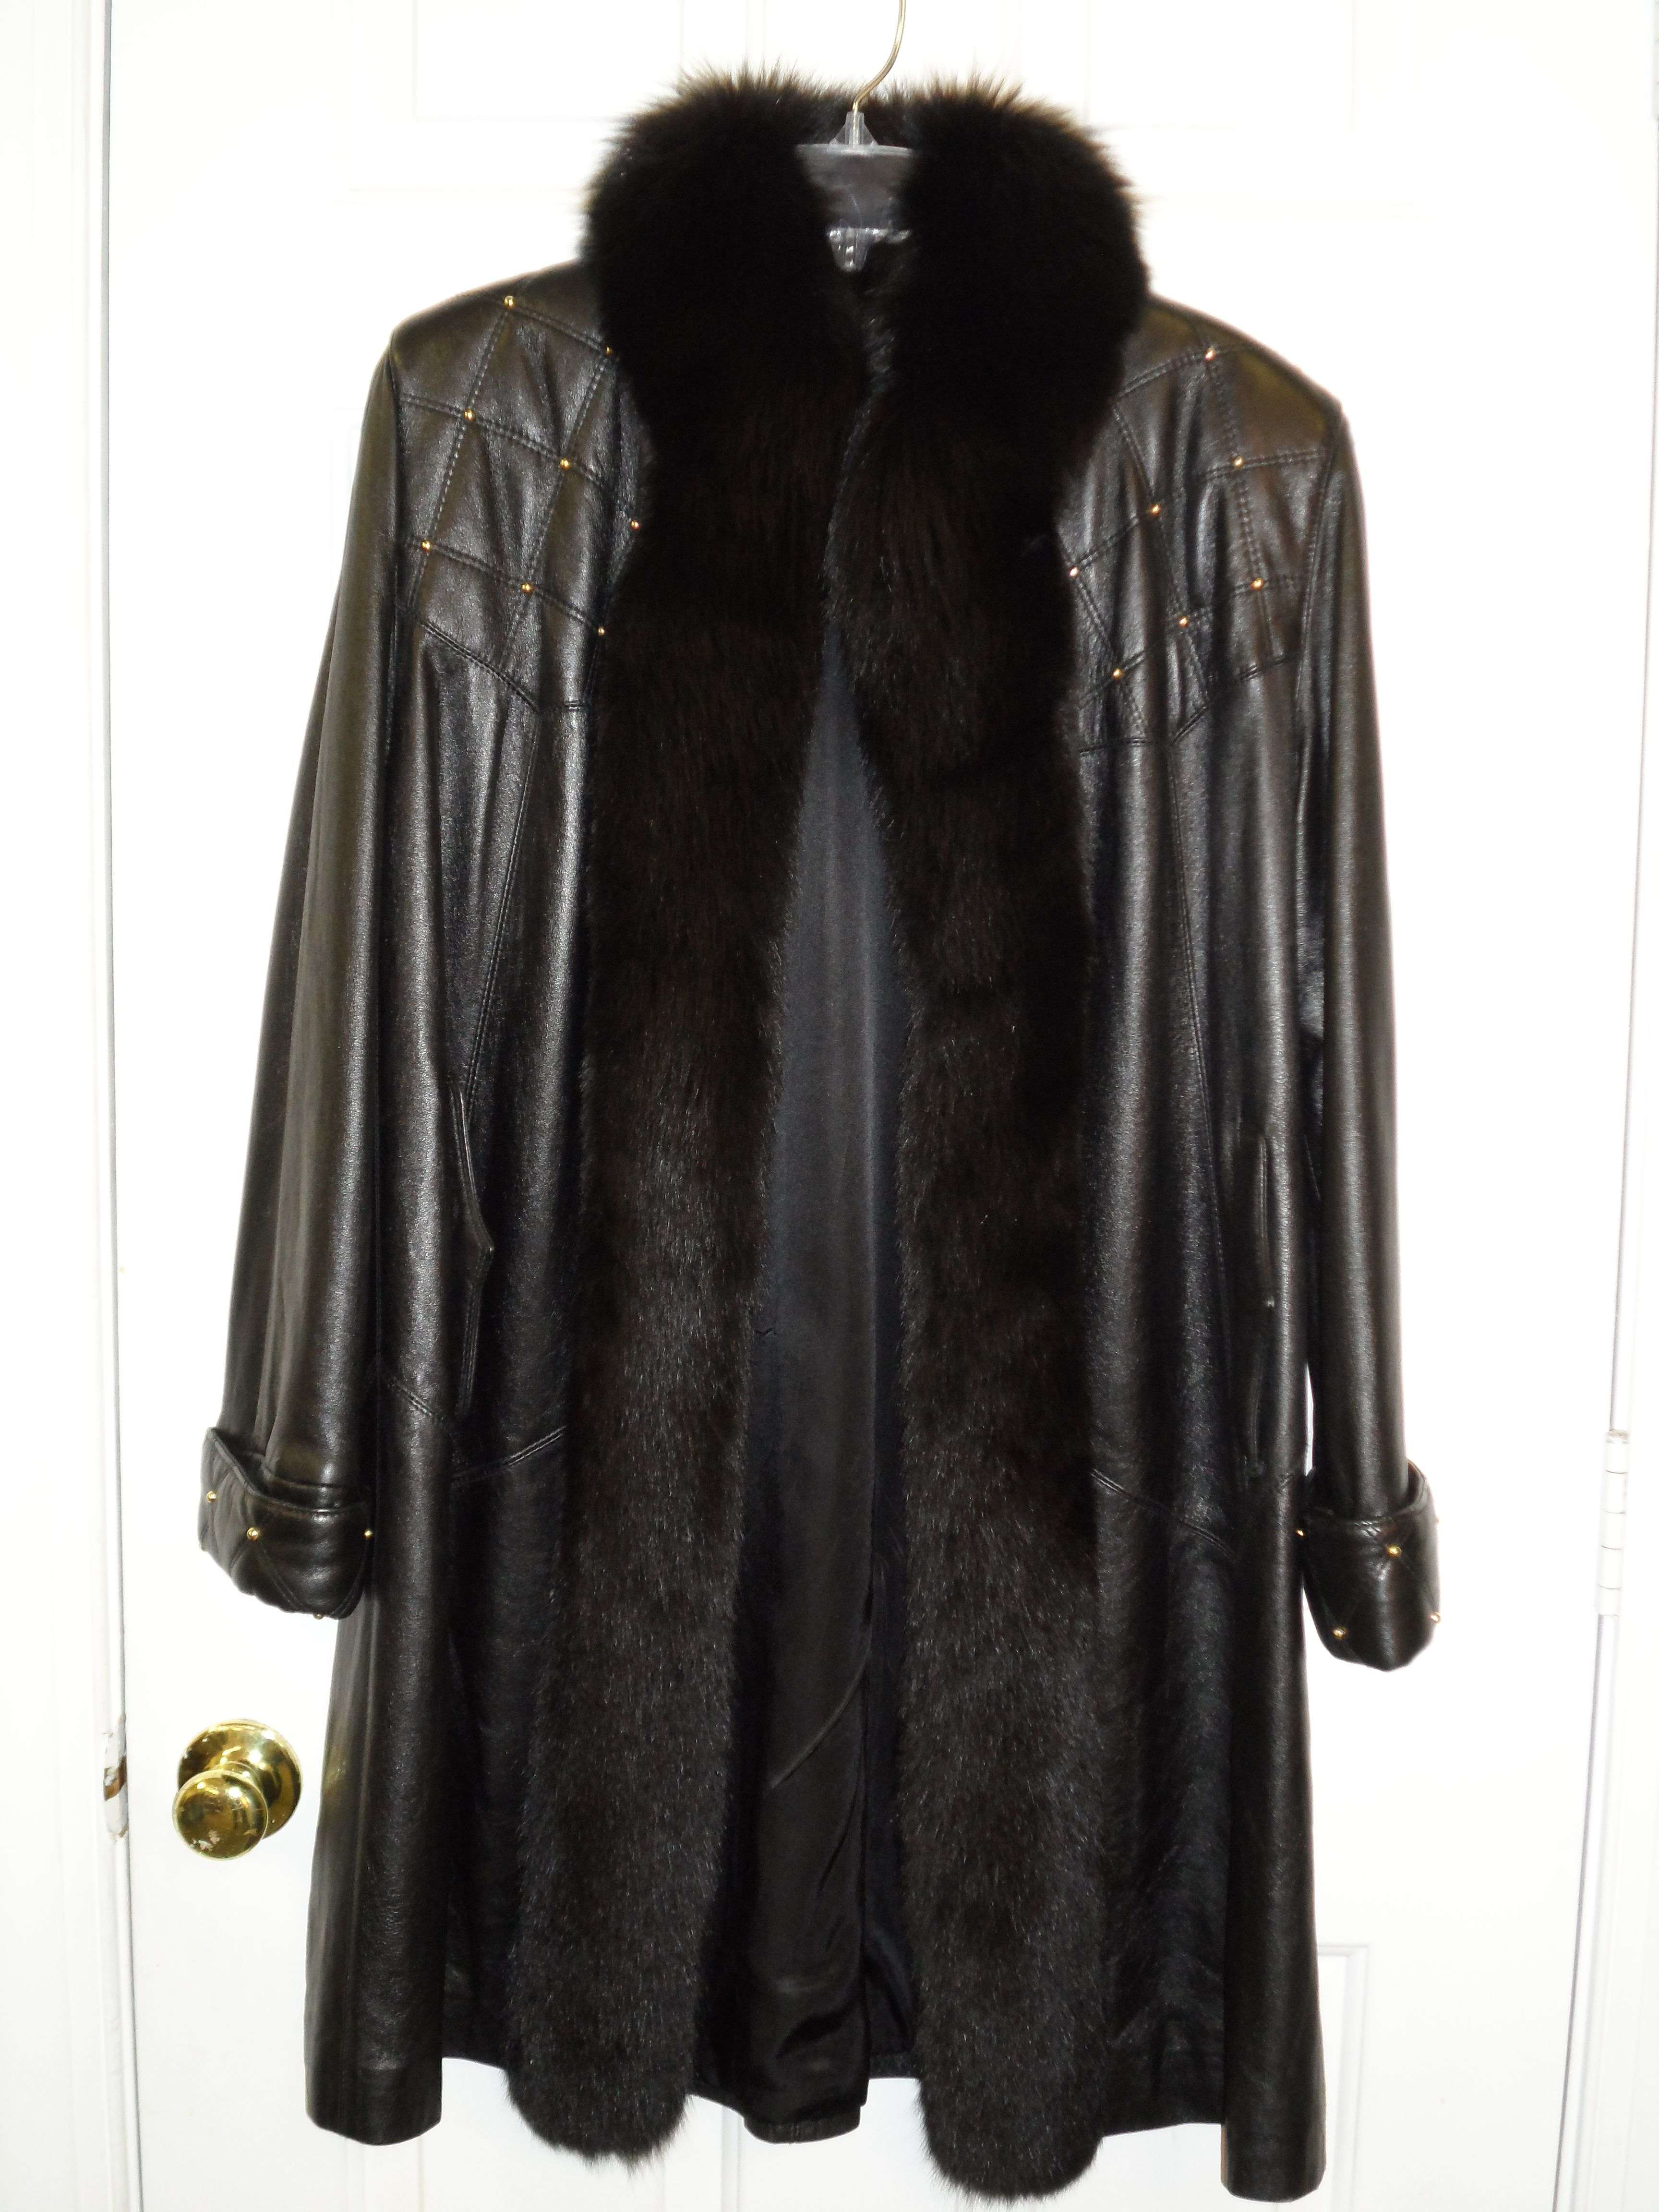 Another great car coat with fur trim. So chic for the winter.